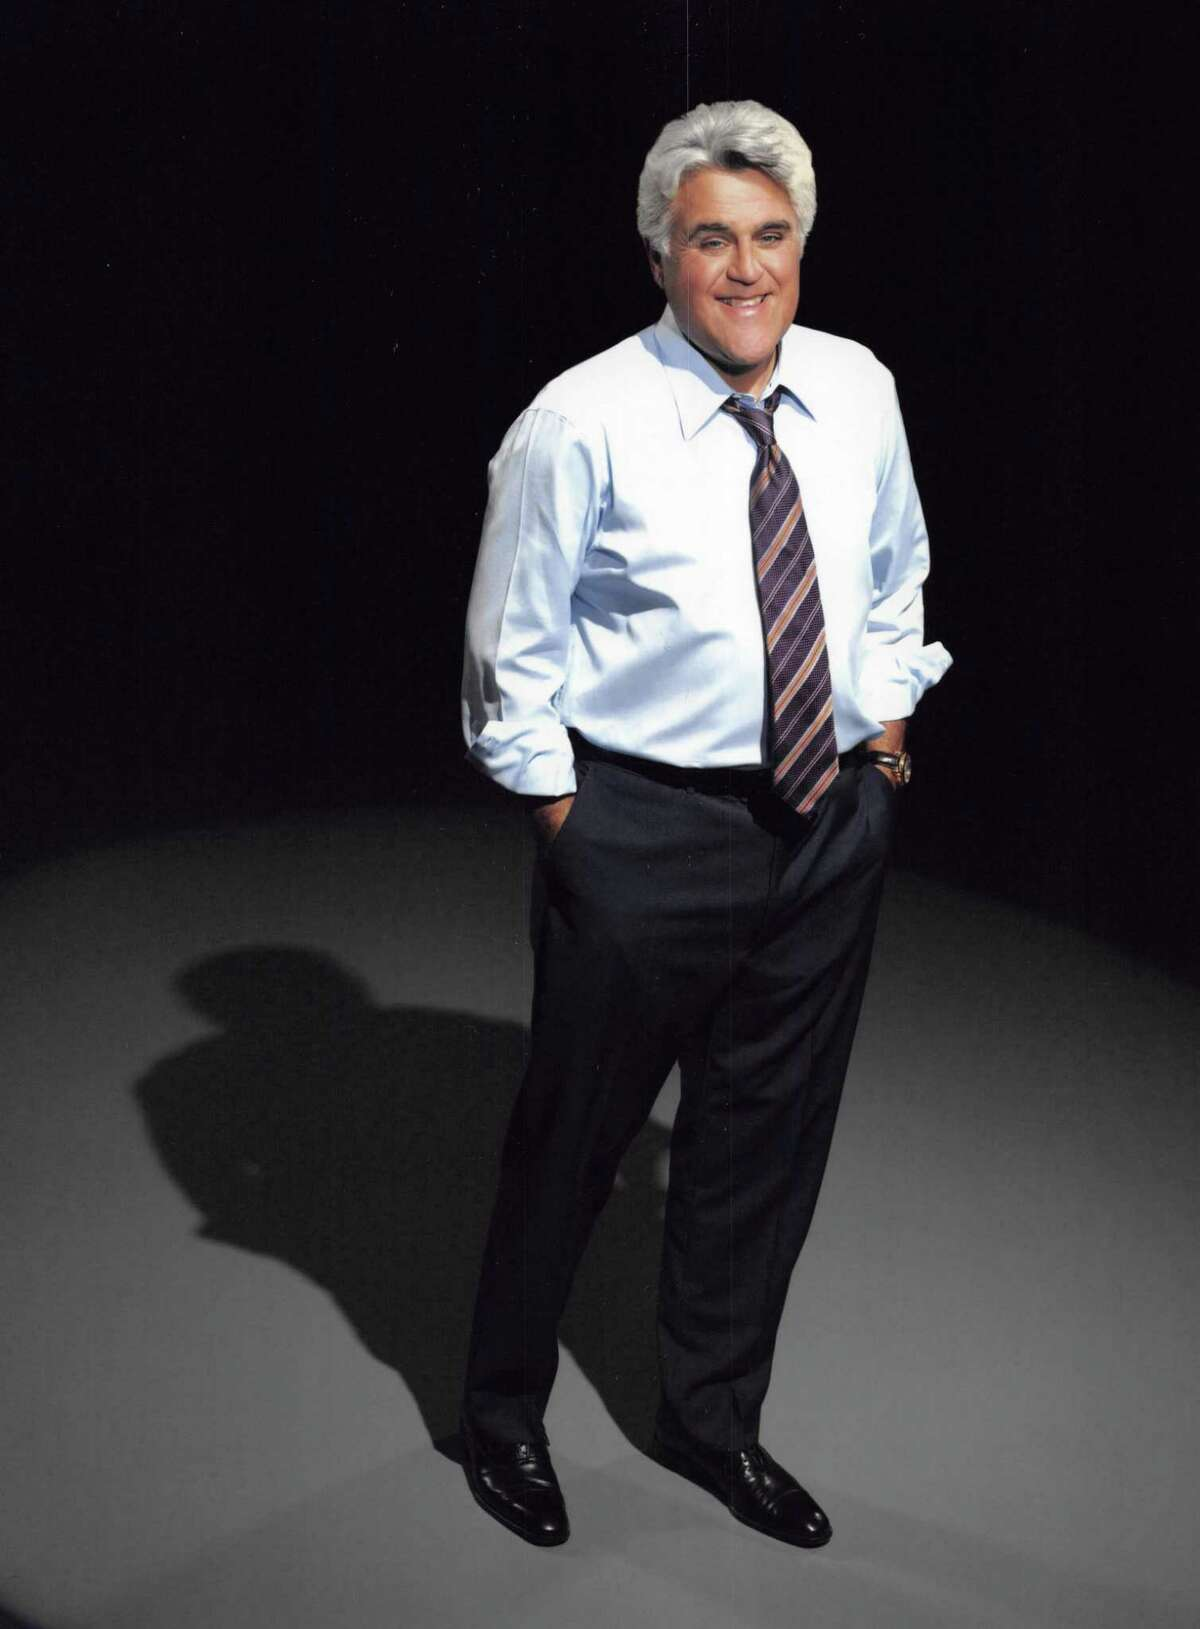 """Jay Leno, former host of """"The Tonight Show"""" and currently hosting """"Jay Leno's Garage,"""" is speaking publicly about having high cholesterol and what he's doing to stay healthy."""